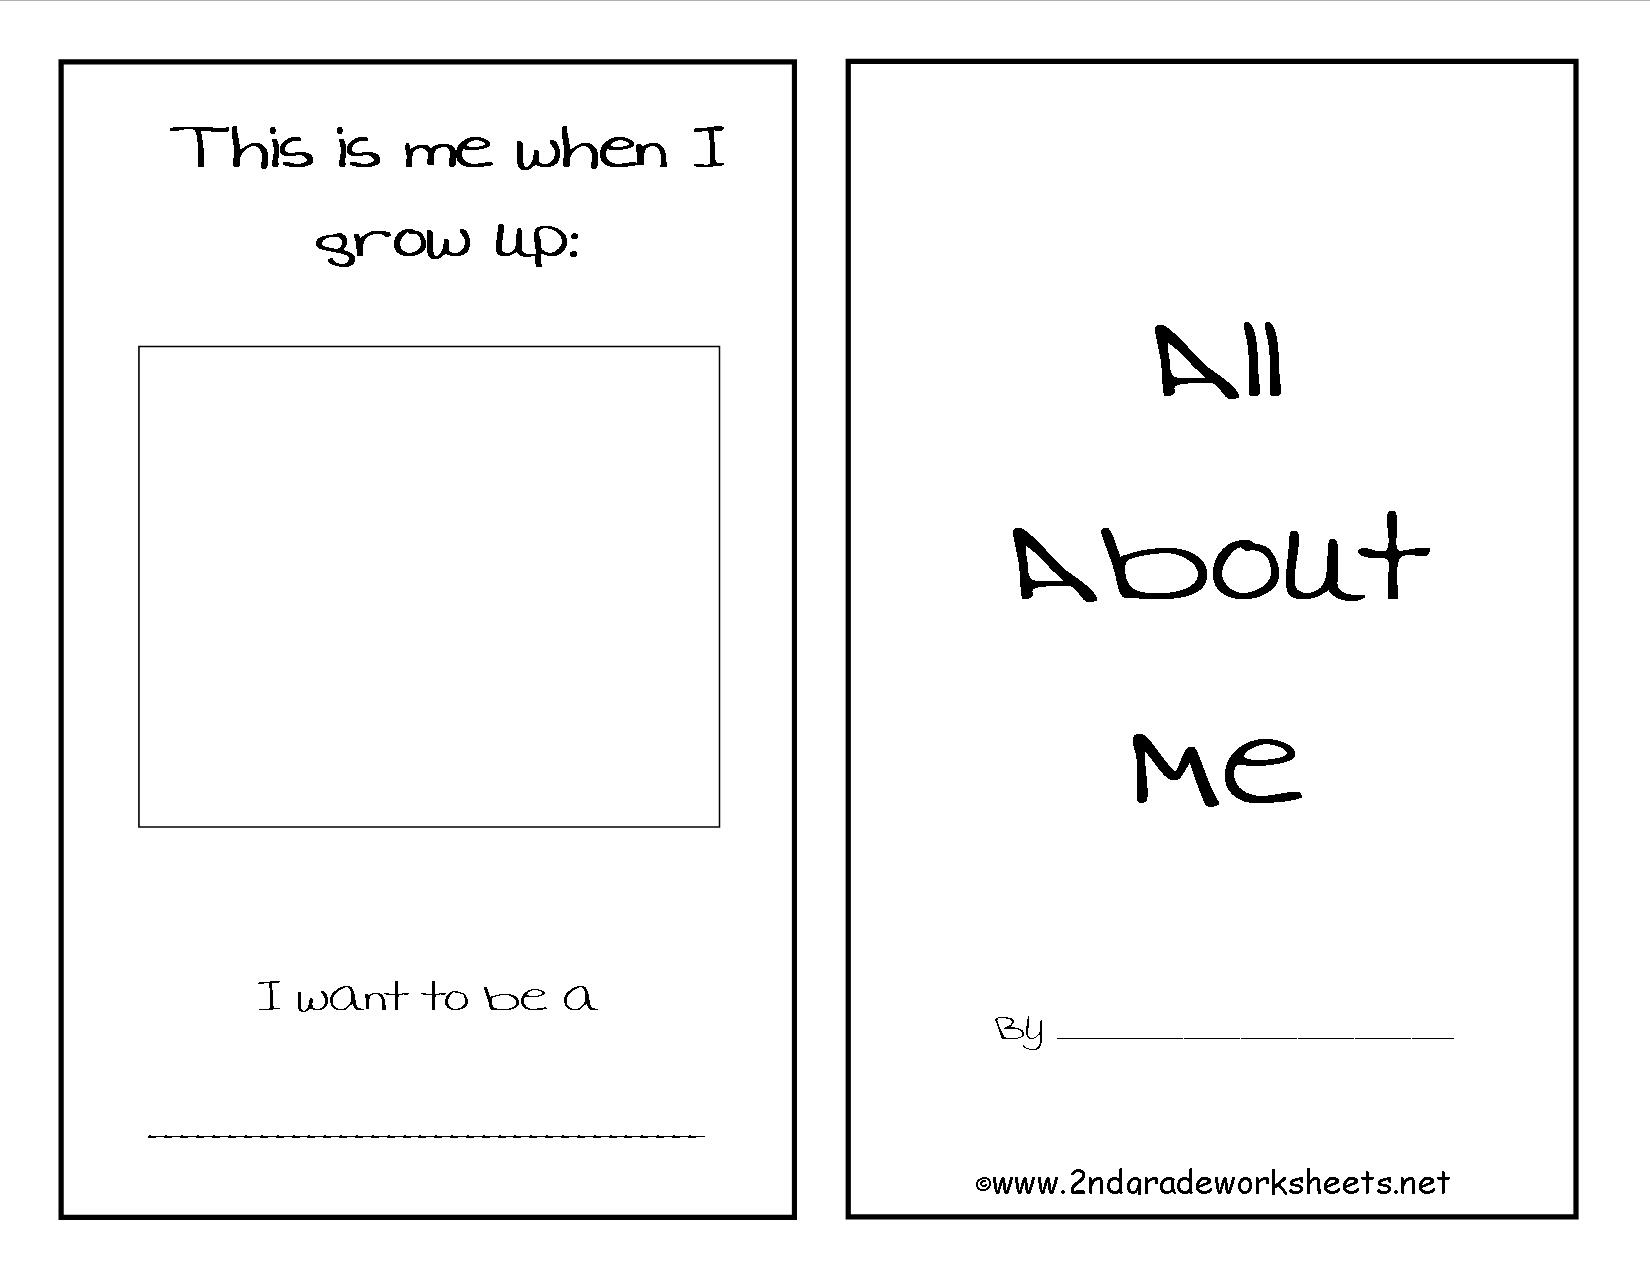 Free Back To School Worksheets And Printouts - Free Printable | Printable School Worksheets